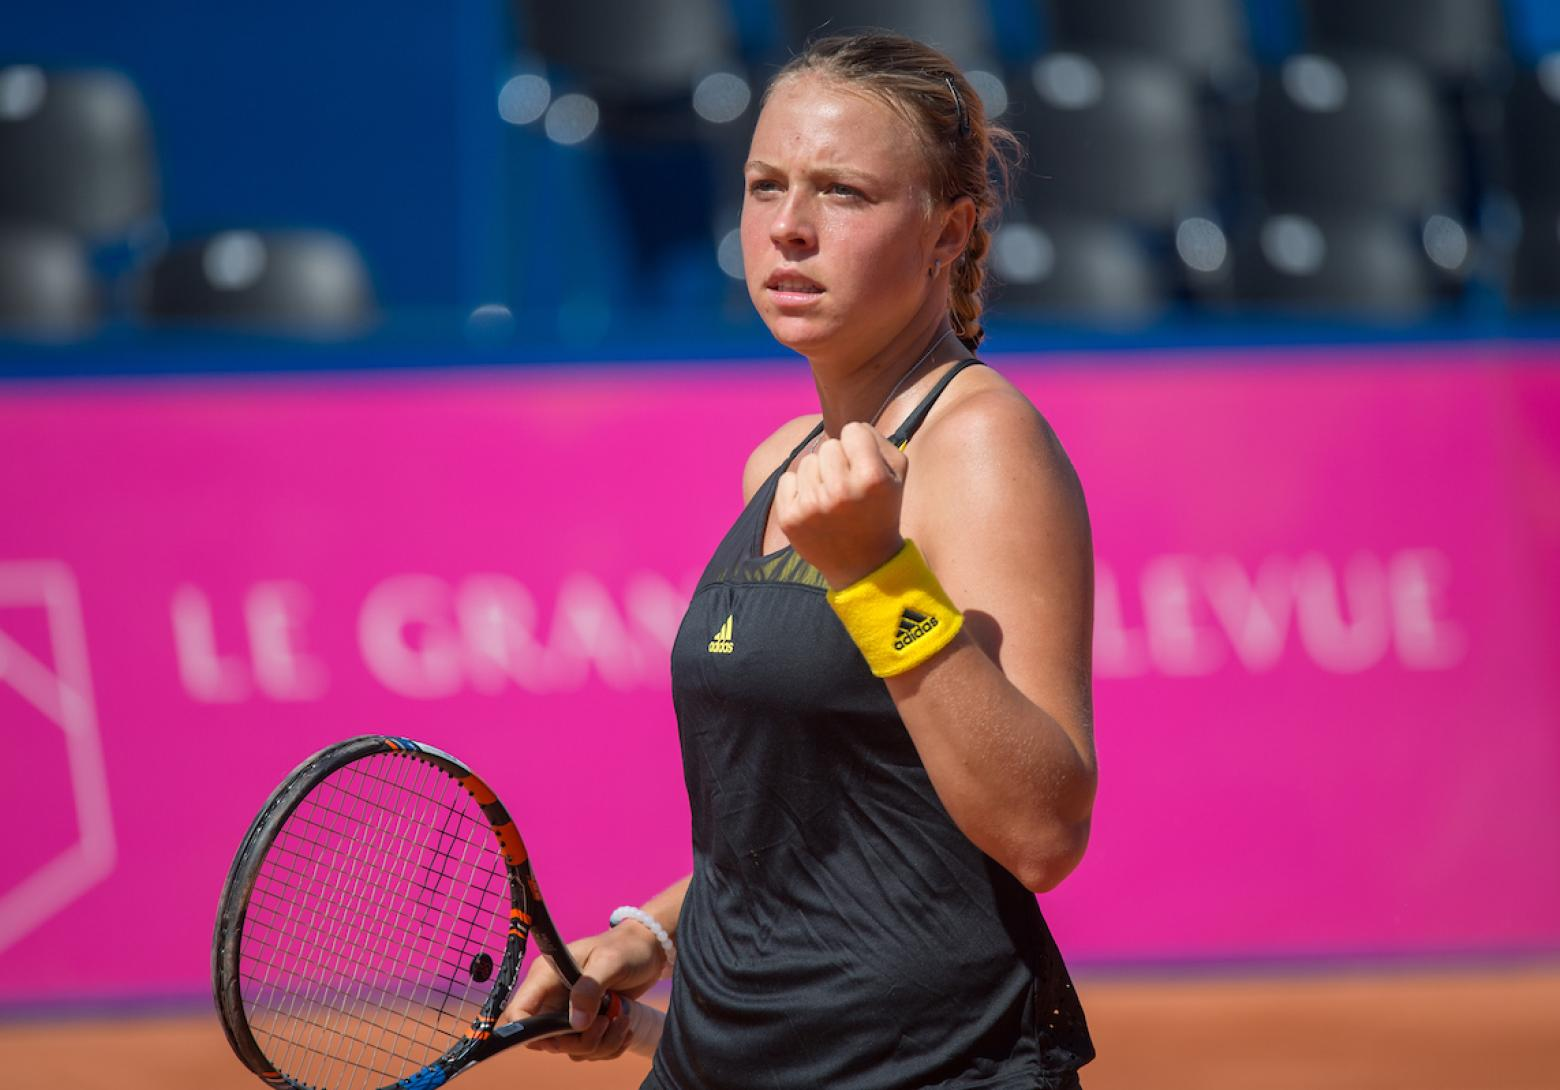 Magdalena Rybarikova VS Viktorija Golubic (BETTING TIPS, Match Preview & Expert Analysis )™